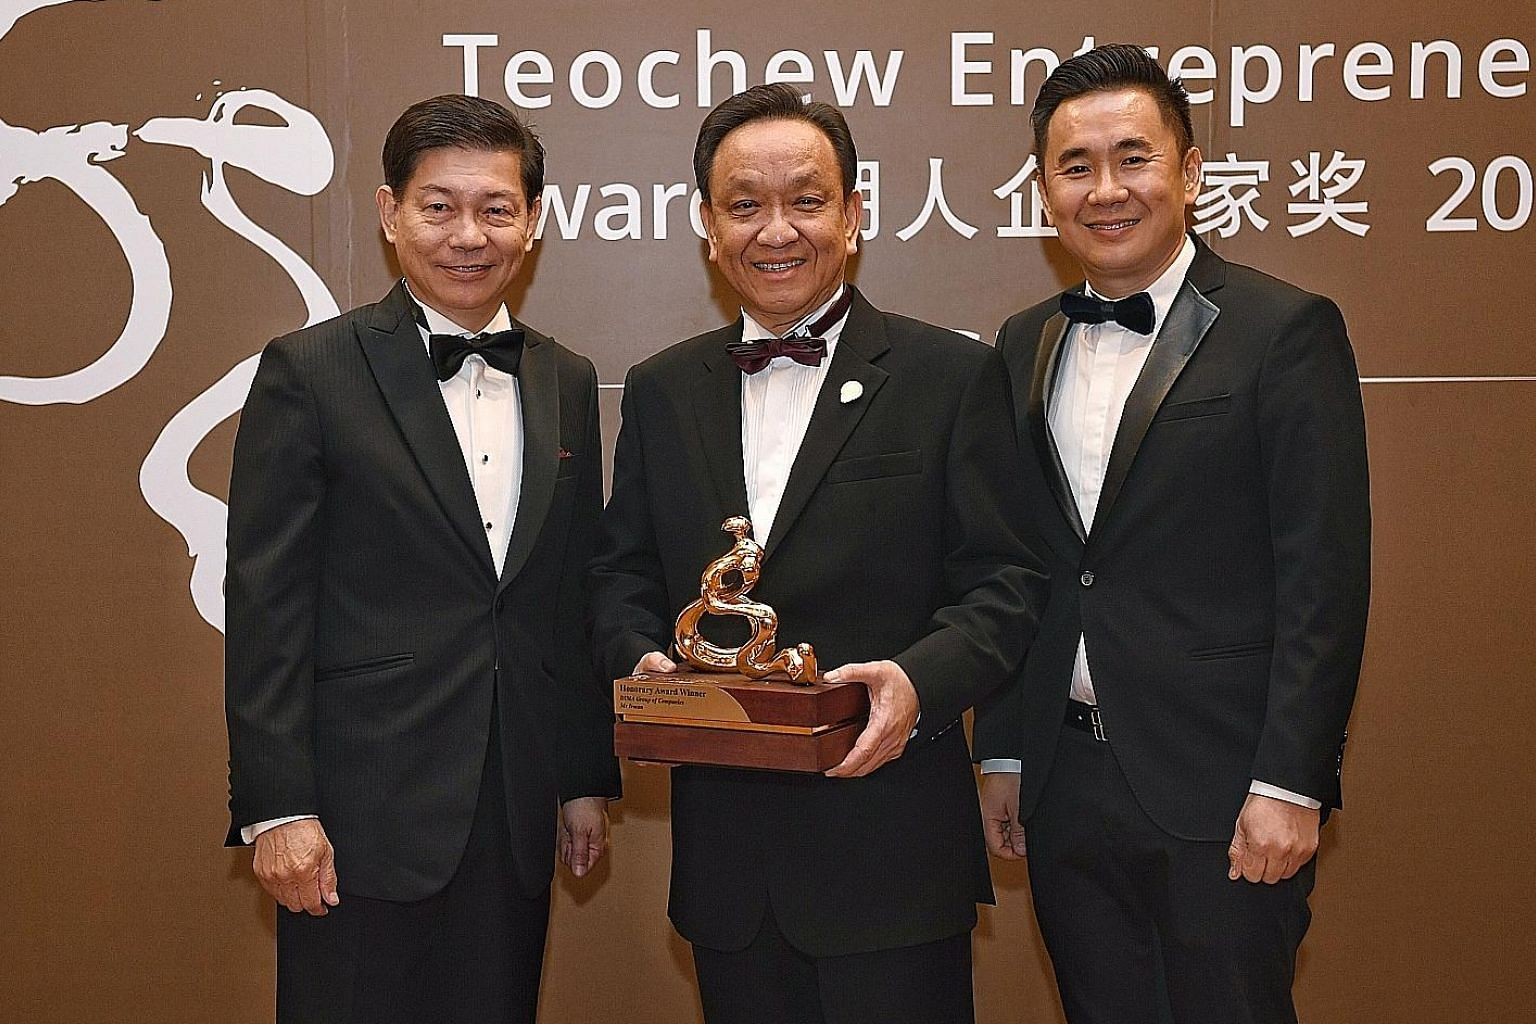 From left: Mr Ronald Lee, managing director of PrimeStaff Management Services; Mr Irman, president and CEO of Indonesia's Dima group; and Mr Stanley Yeo, founder of ZACD Group at the Asean Teochew Entrepreneur Award event. It is given out by the Teoc